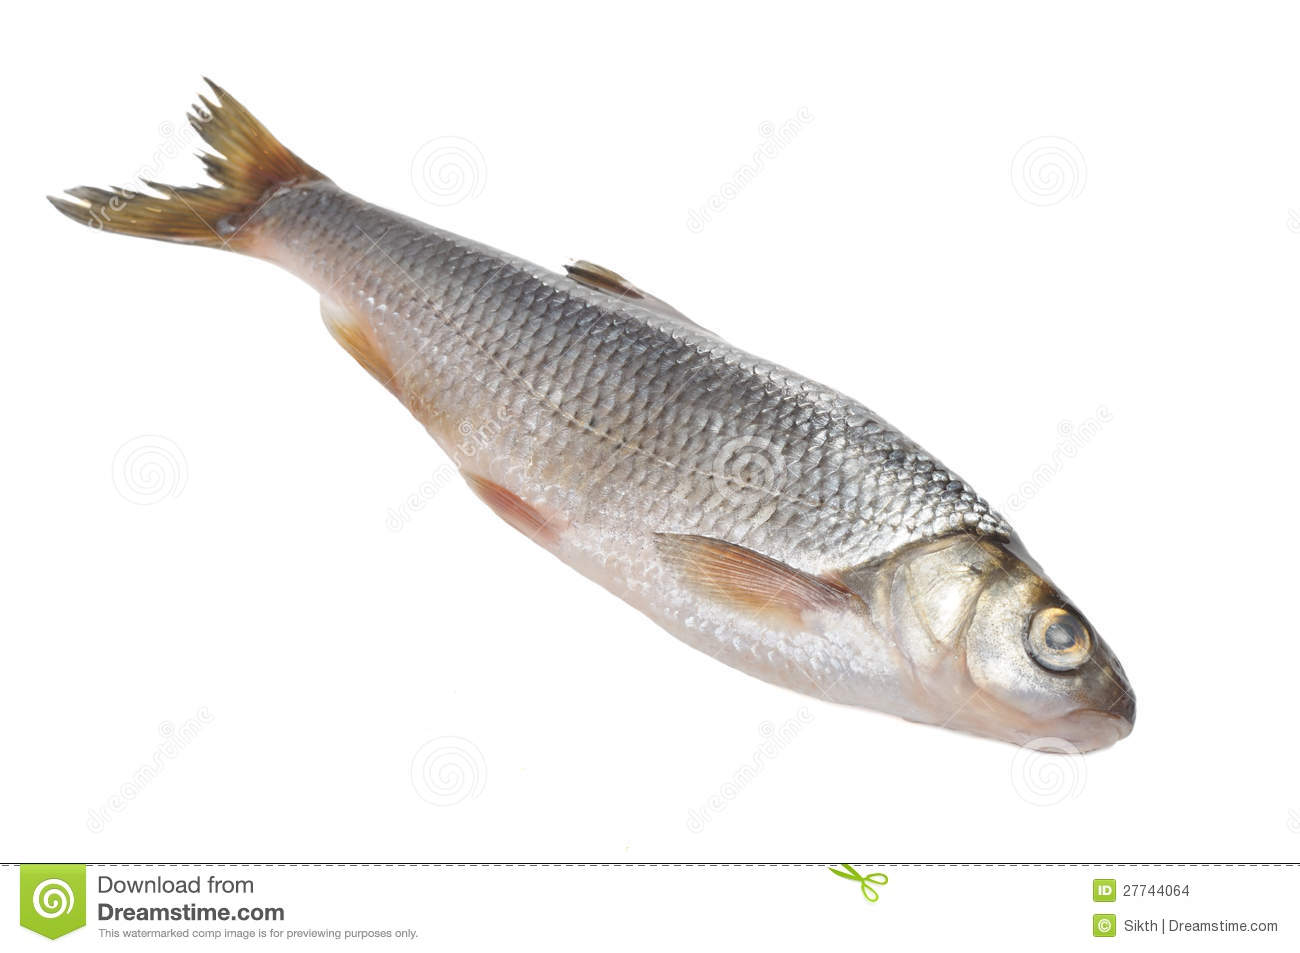 Freshwater fish dace - Dace Fish Isolated On White Background Stock Images